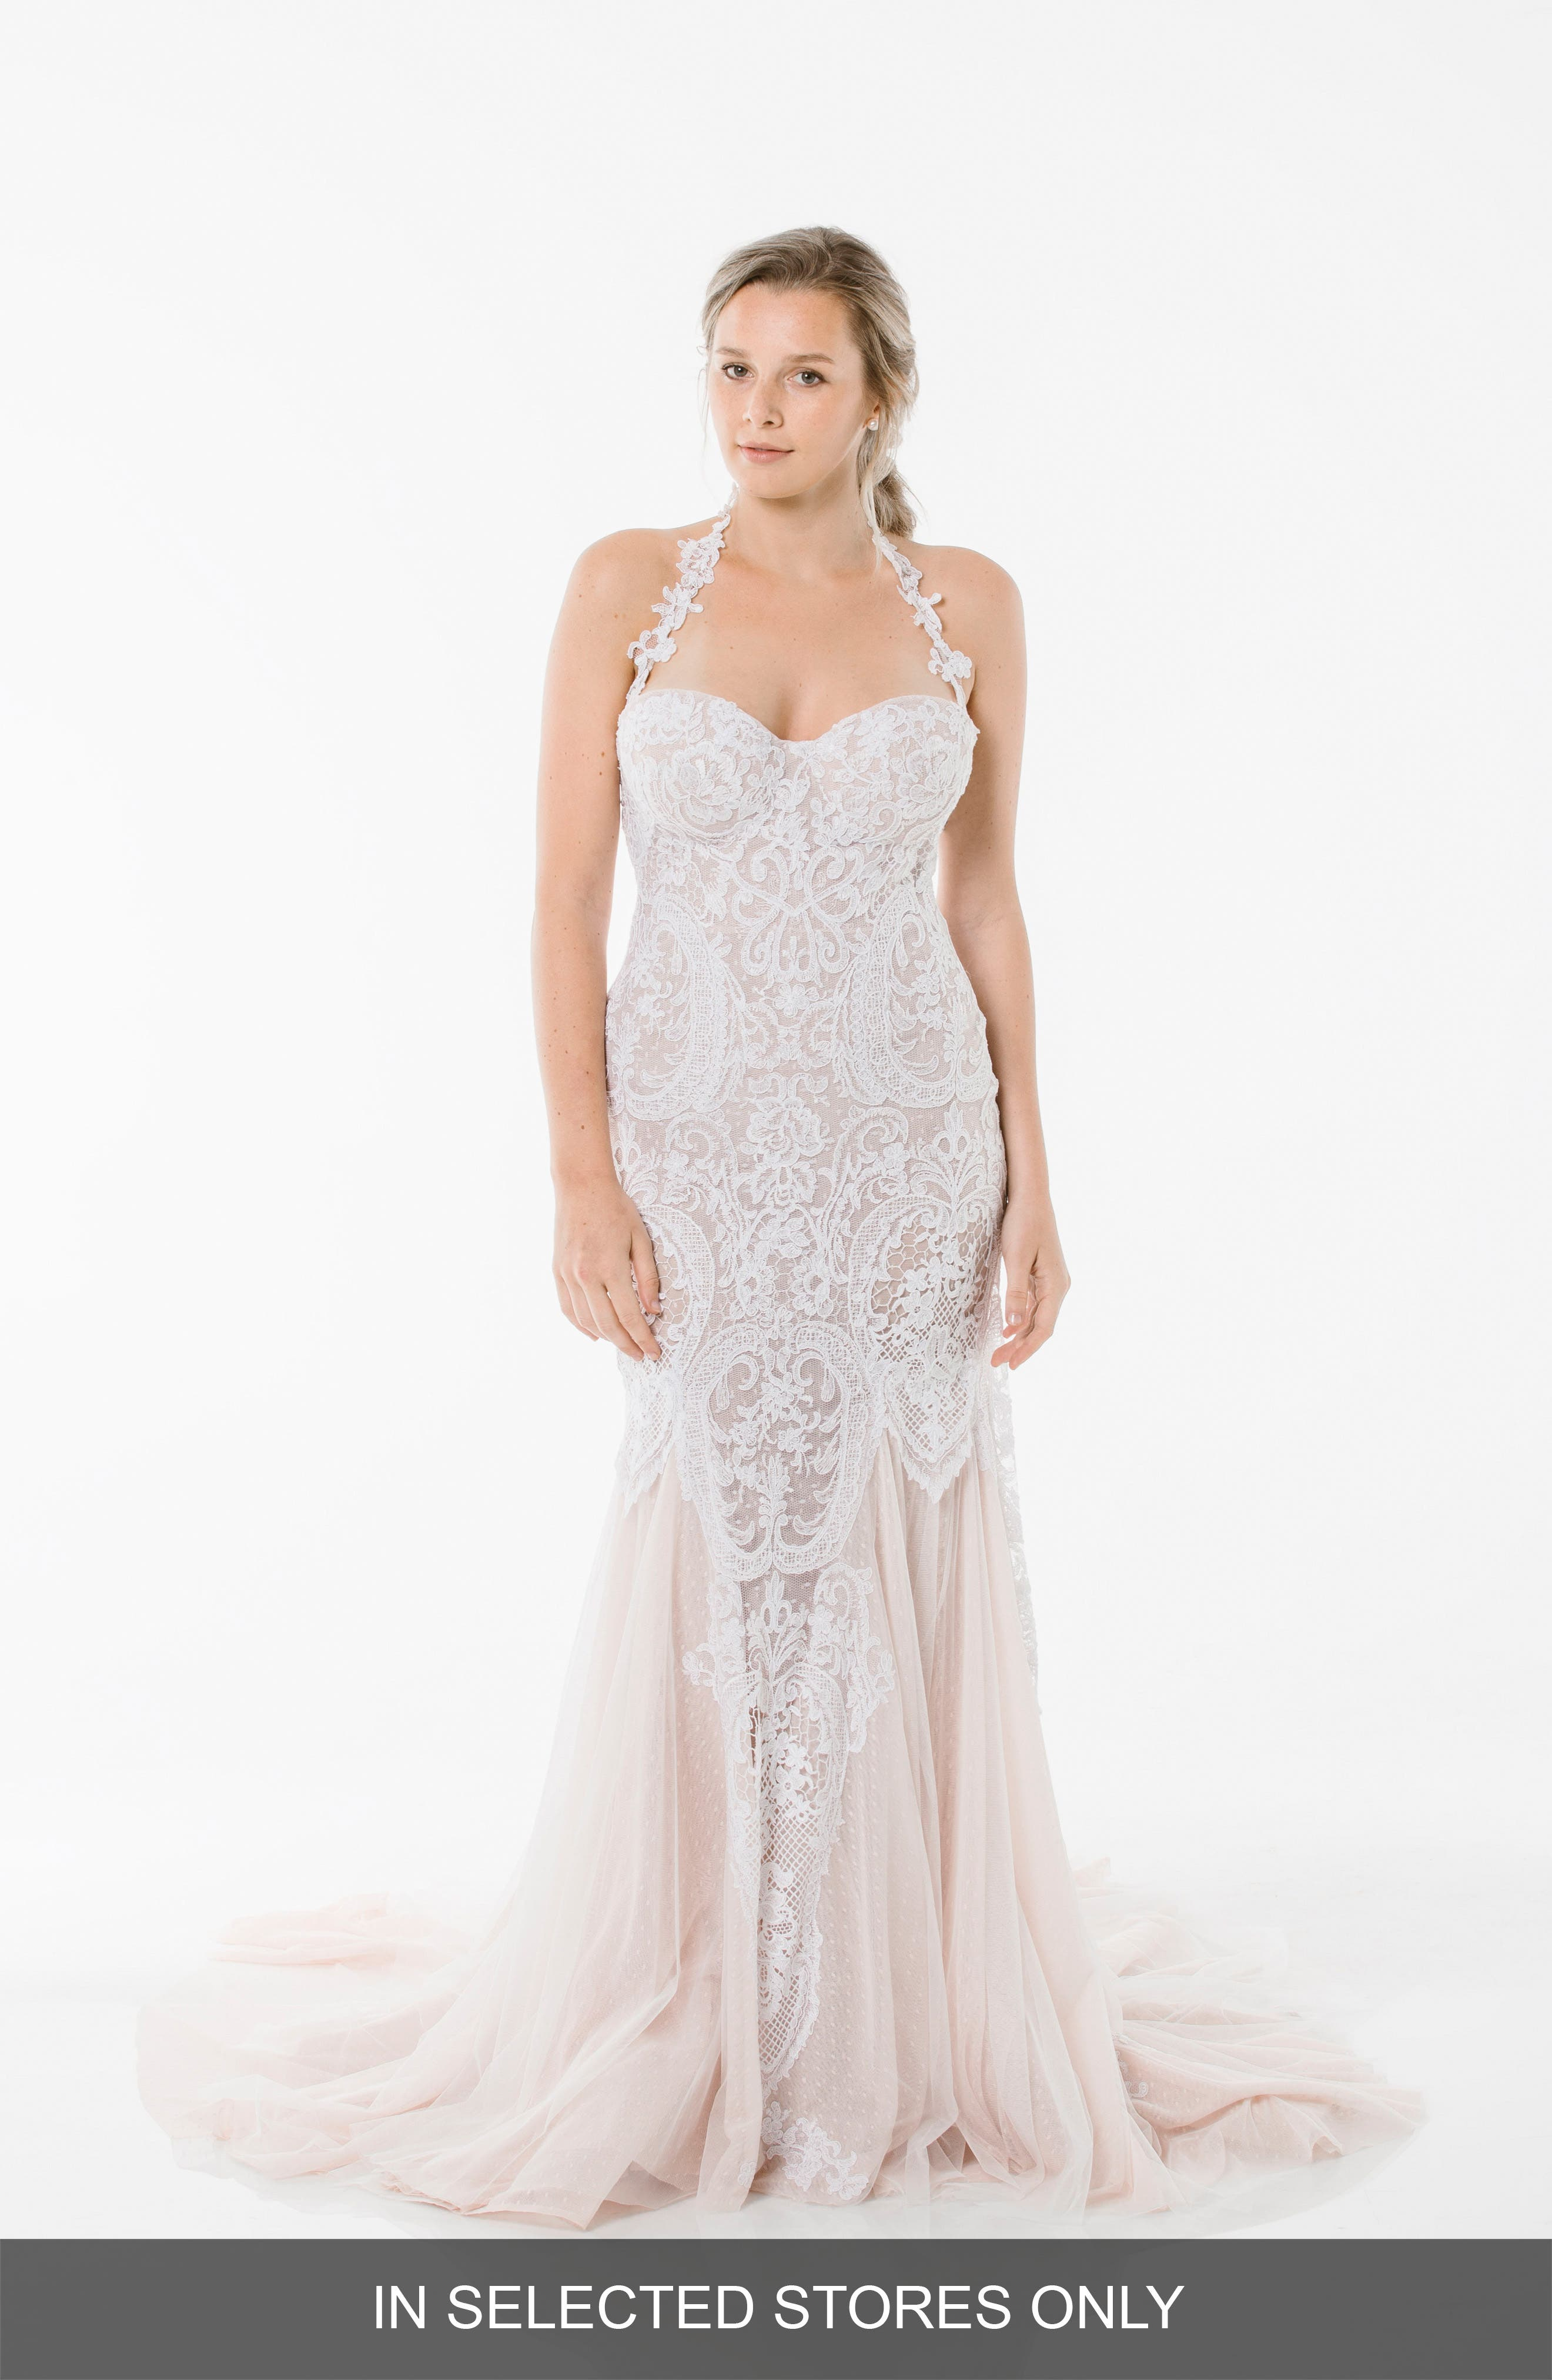 Olia Zavozina Lena Lace Halter Gown (In Selected Stores Only)